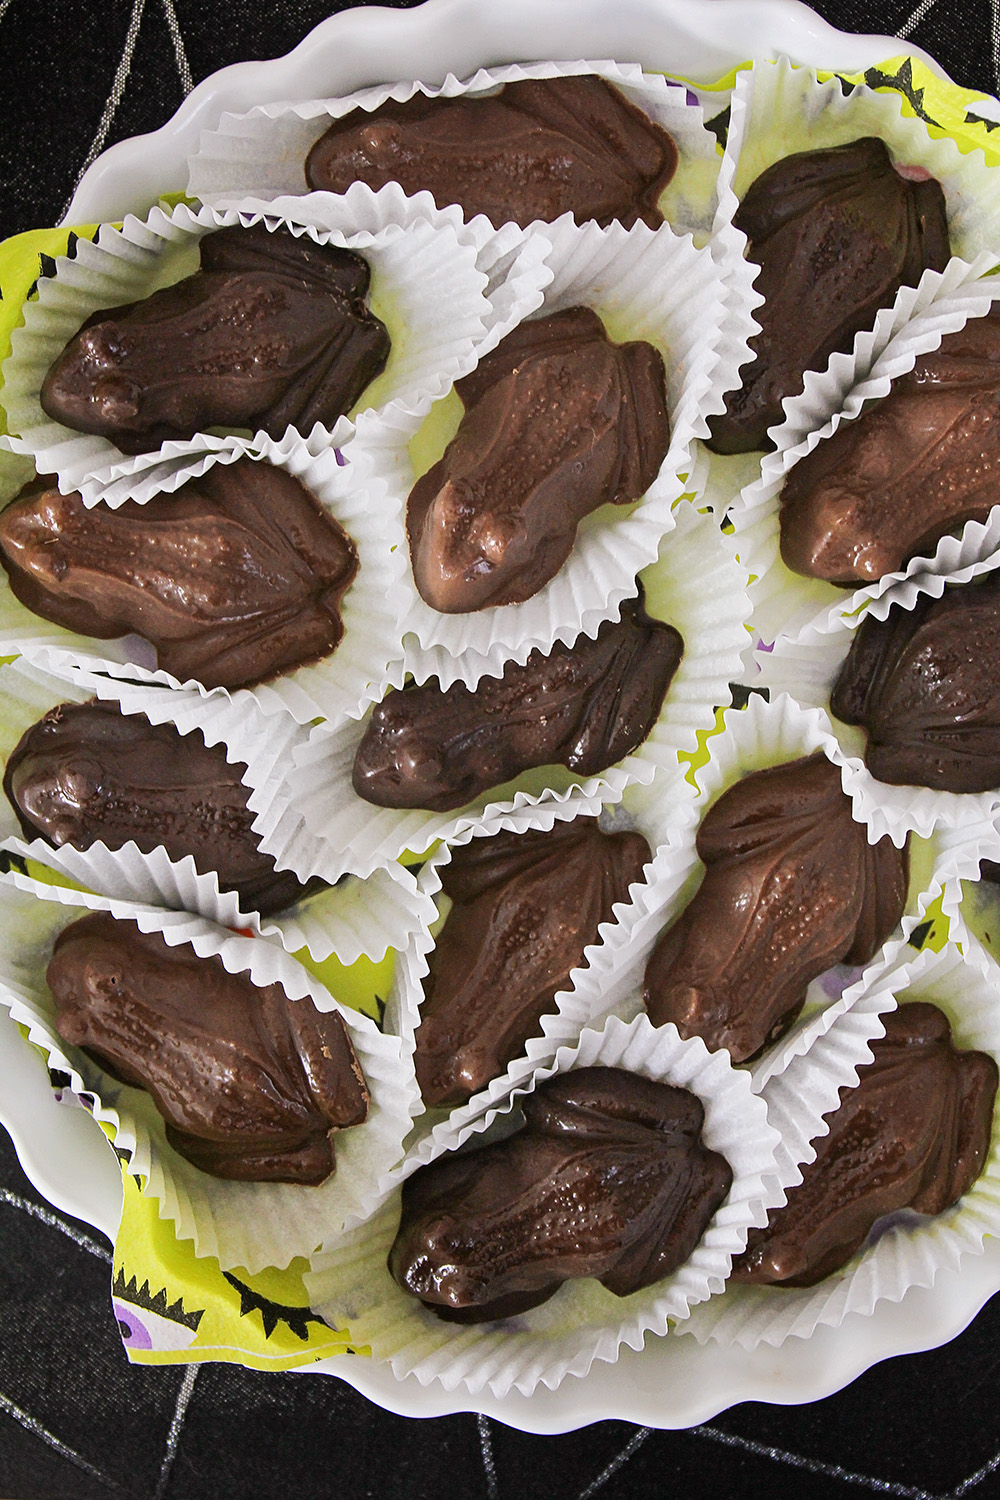 These homemade chocolate frogs are the perfect touch for your Harry Potter party, and so easy to make!